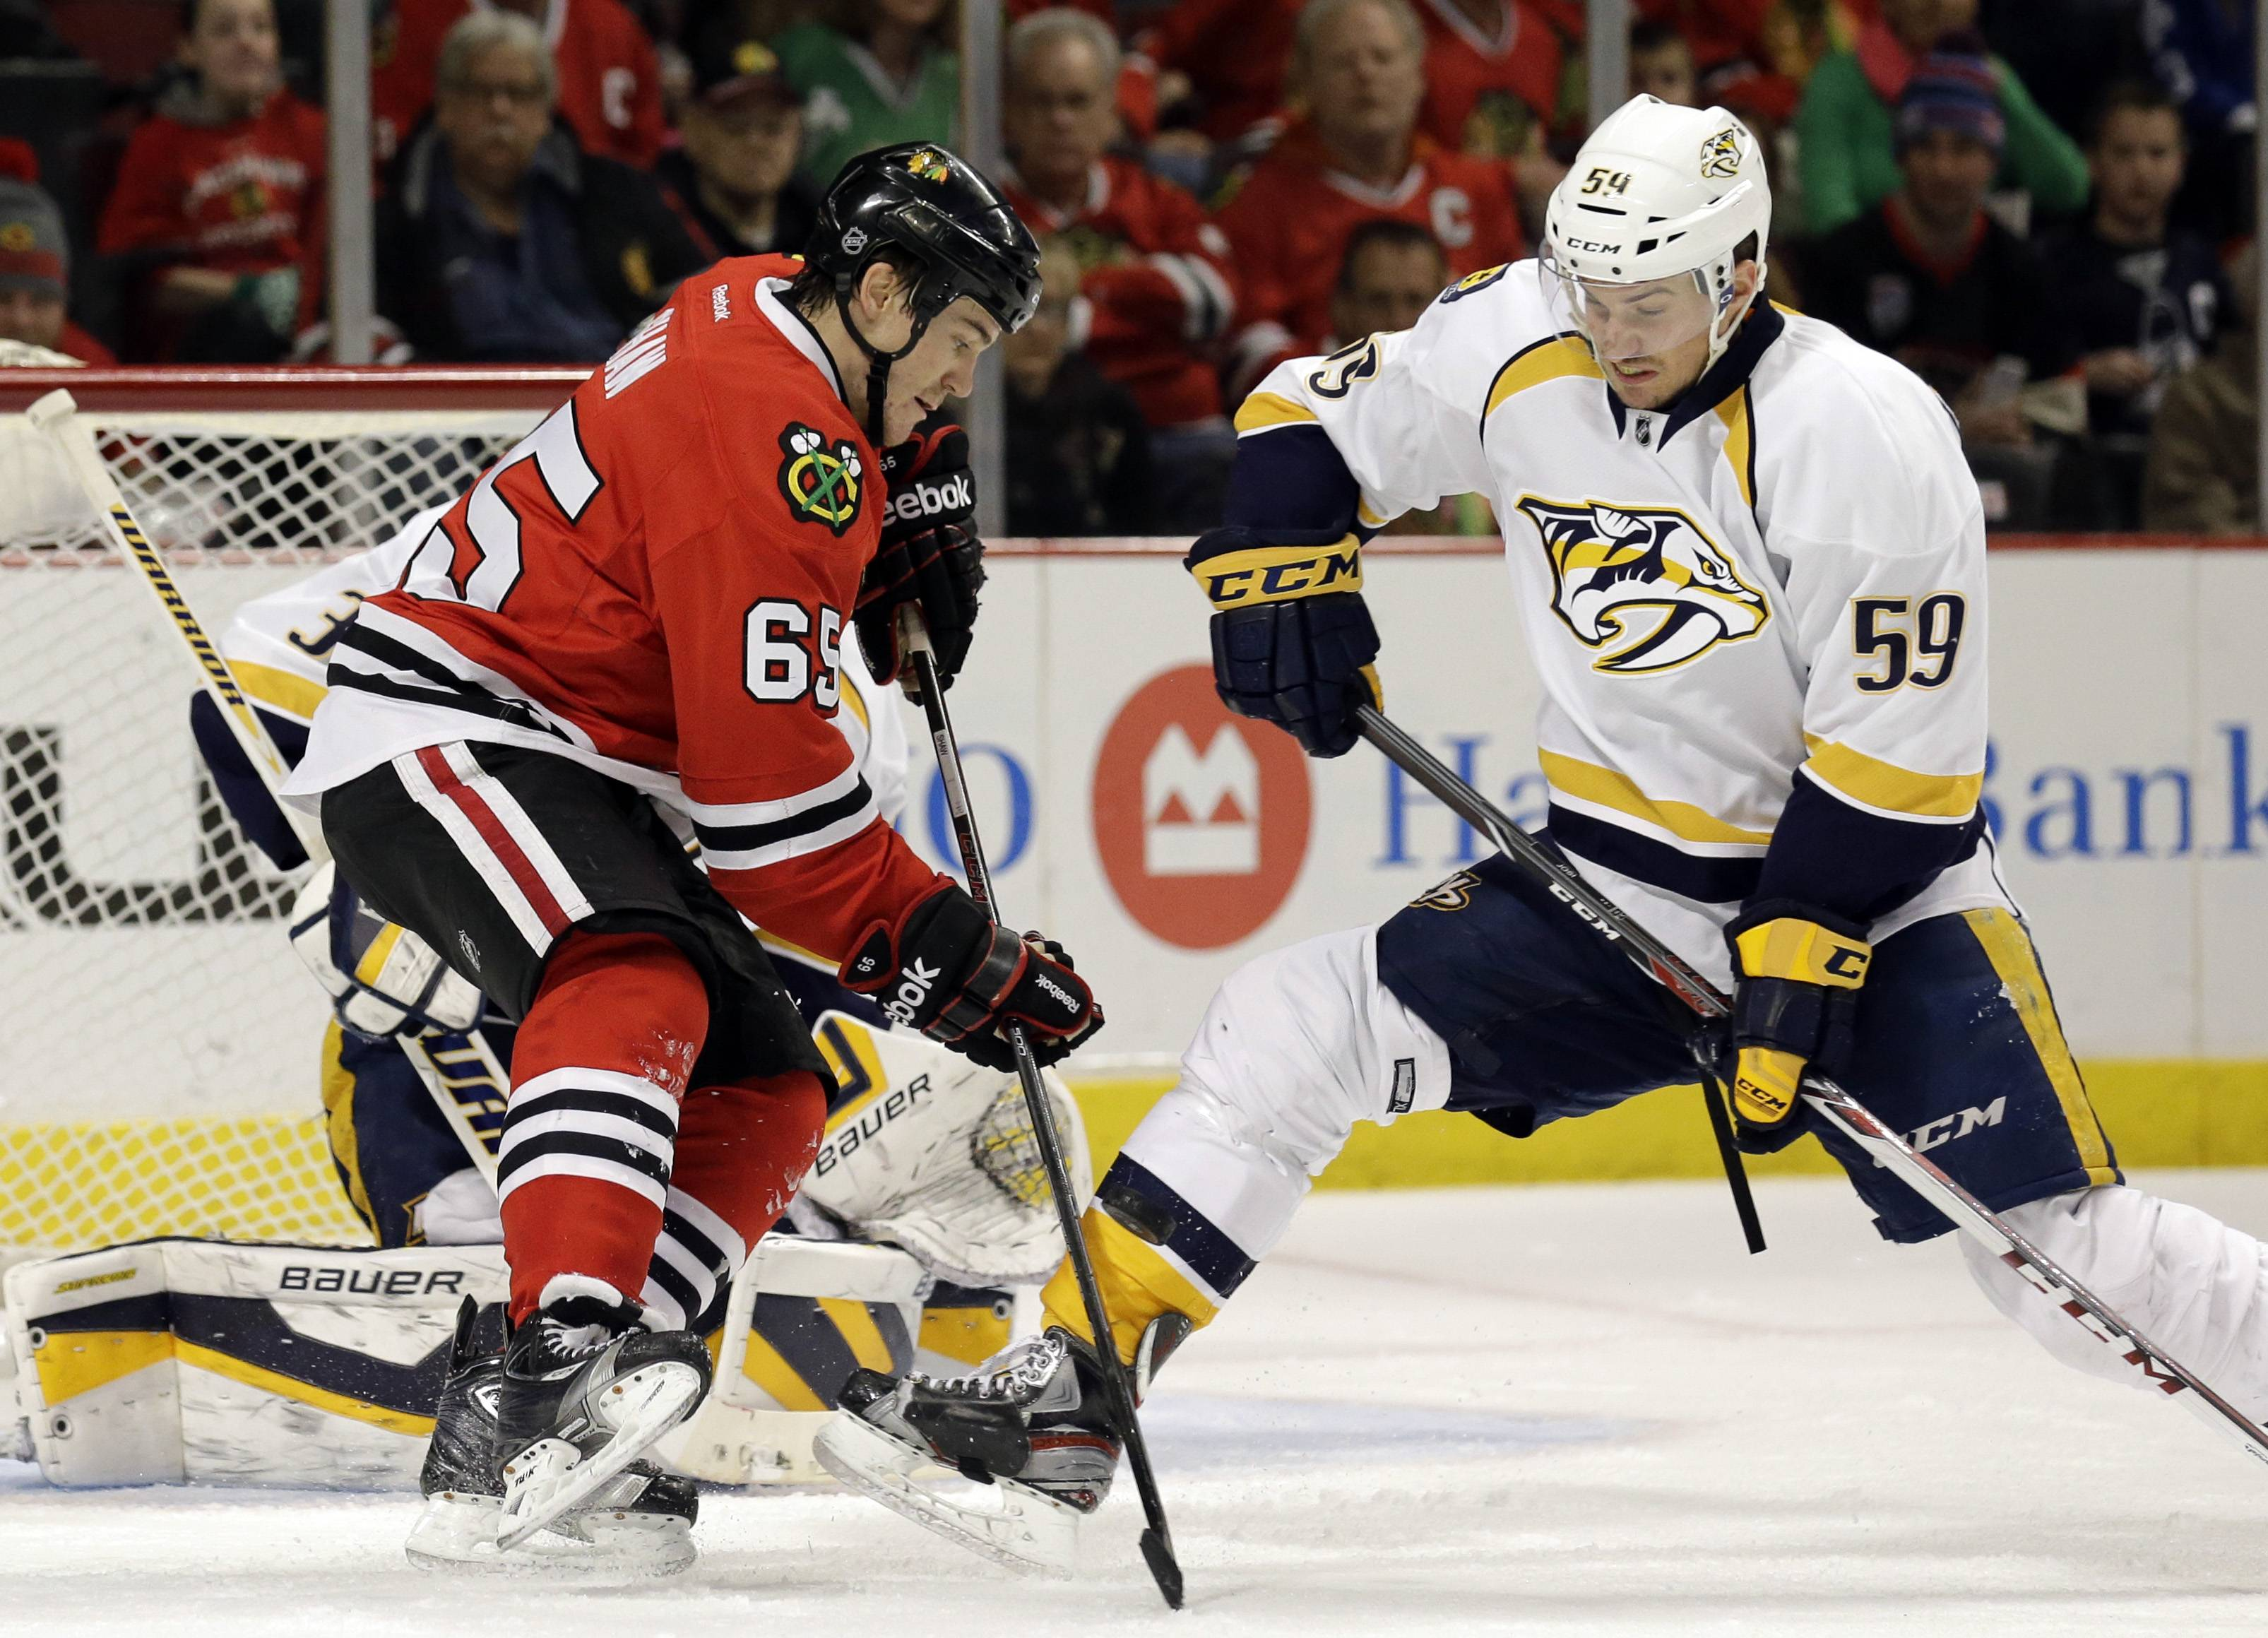 Chicago Blackhawks' Andrew Shaw (65), left, controls the puck against  Nashville Predators' Roman Josi (59) during the second period of an NHL hockey game in Chicago, Friday, March 14, 2014. The Predators won 3-2.